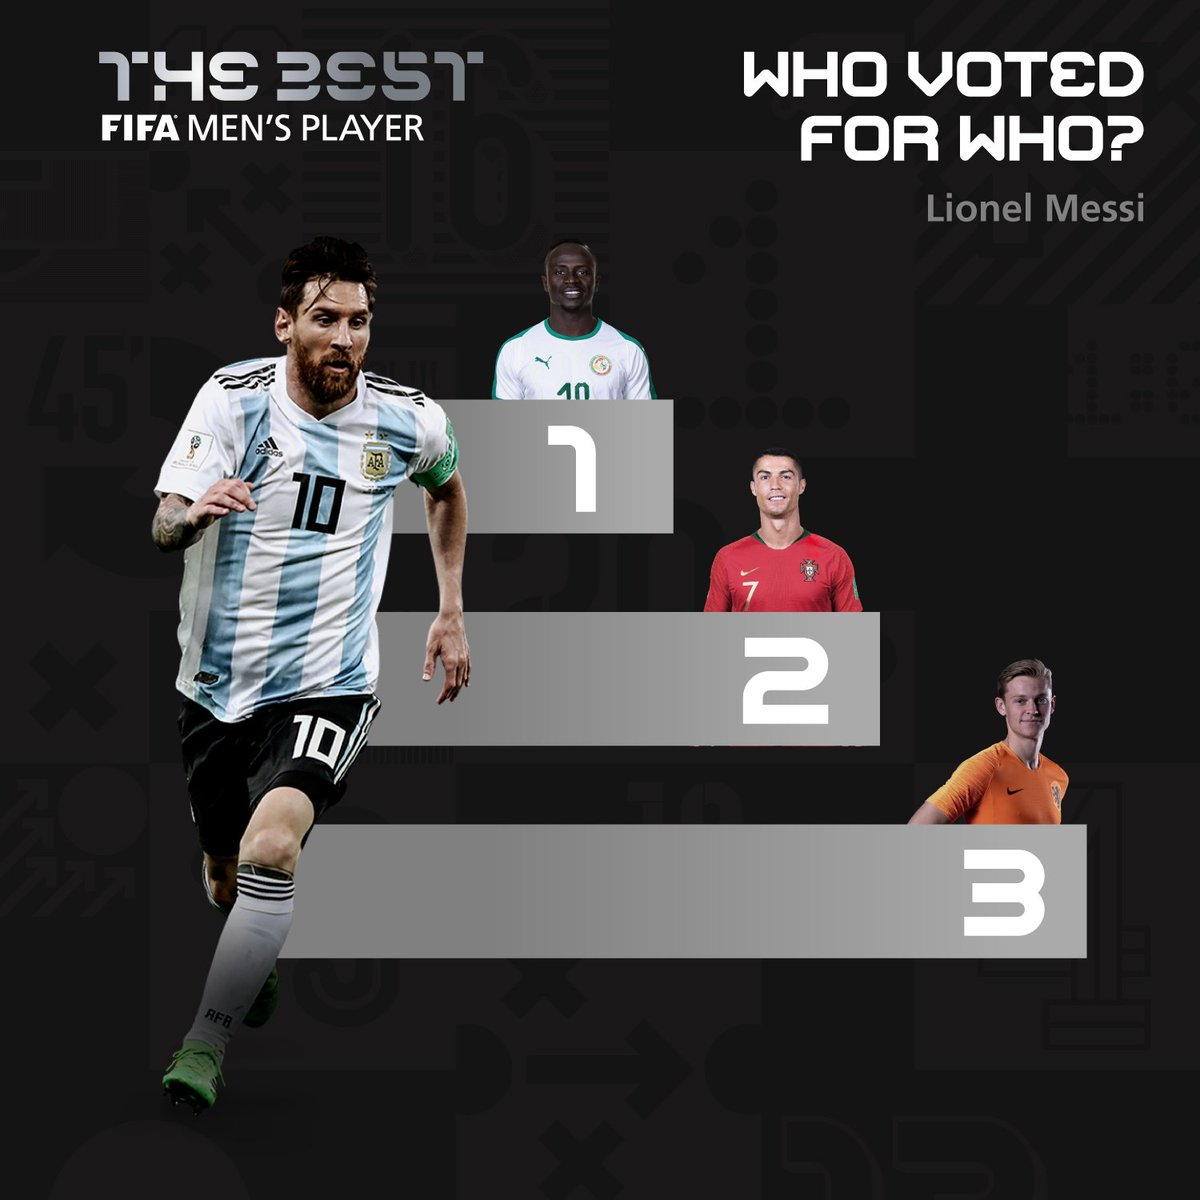 Leo Messi voted for #Mane and #Guardiola to win the Men's Player and Coach award. #Messi #TheBest #FIFAFootballAwards #WeAreMessi